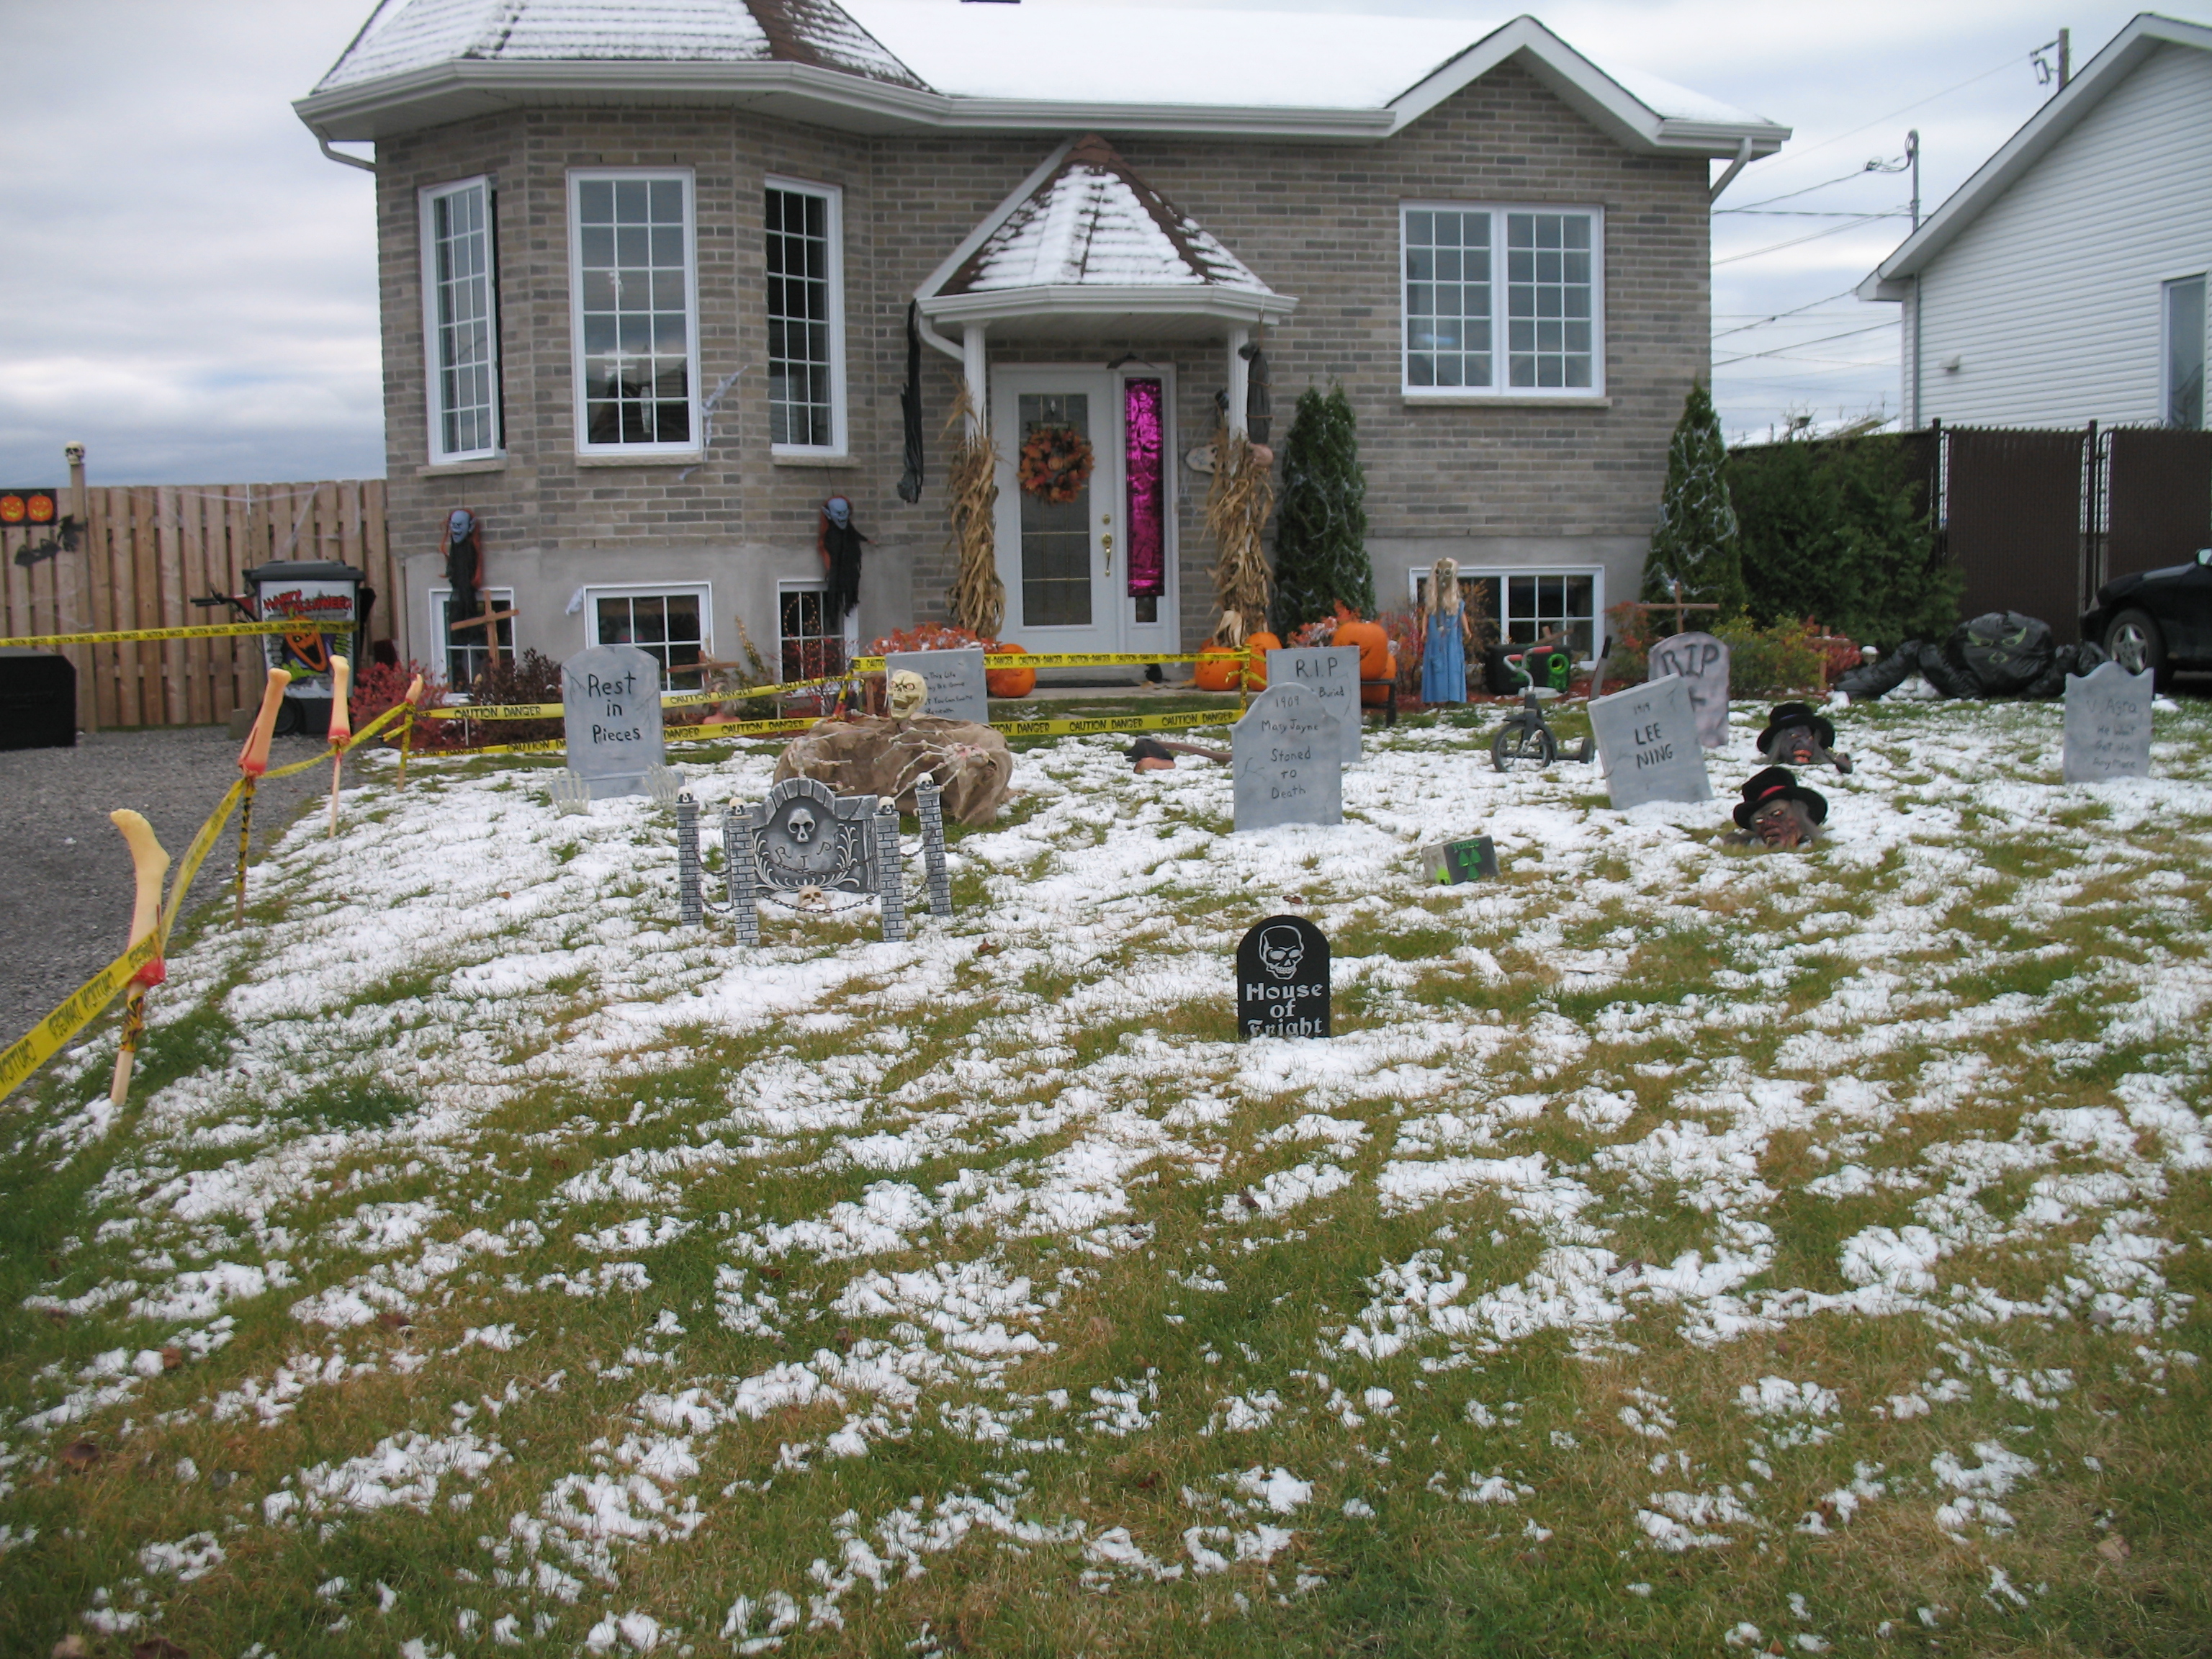 Picture of Mike's House of Fright Halloween Graveyard Haunt